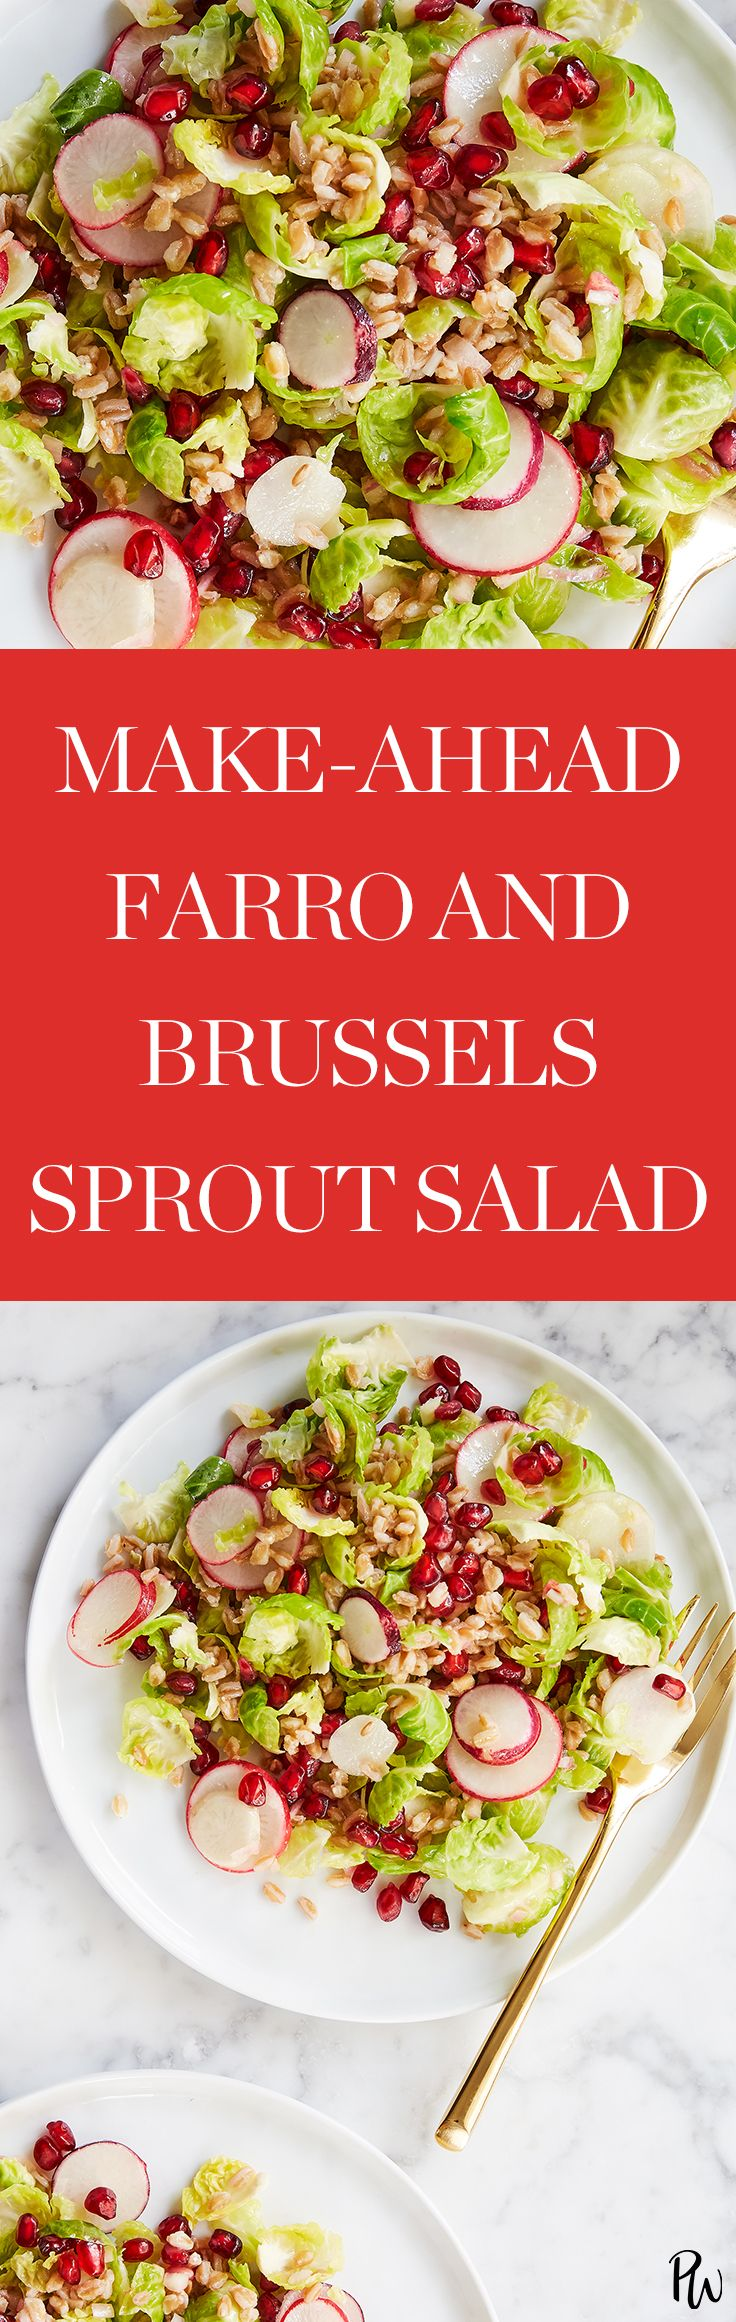 Make Ahead Farro And Brussels Sprout Salad Purewow Food Lunch Recipe Salad Cooking Healthy Brussel Sprout Salad Brussel Sprouts Delicious Salads